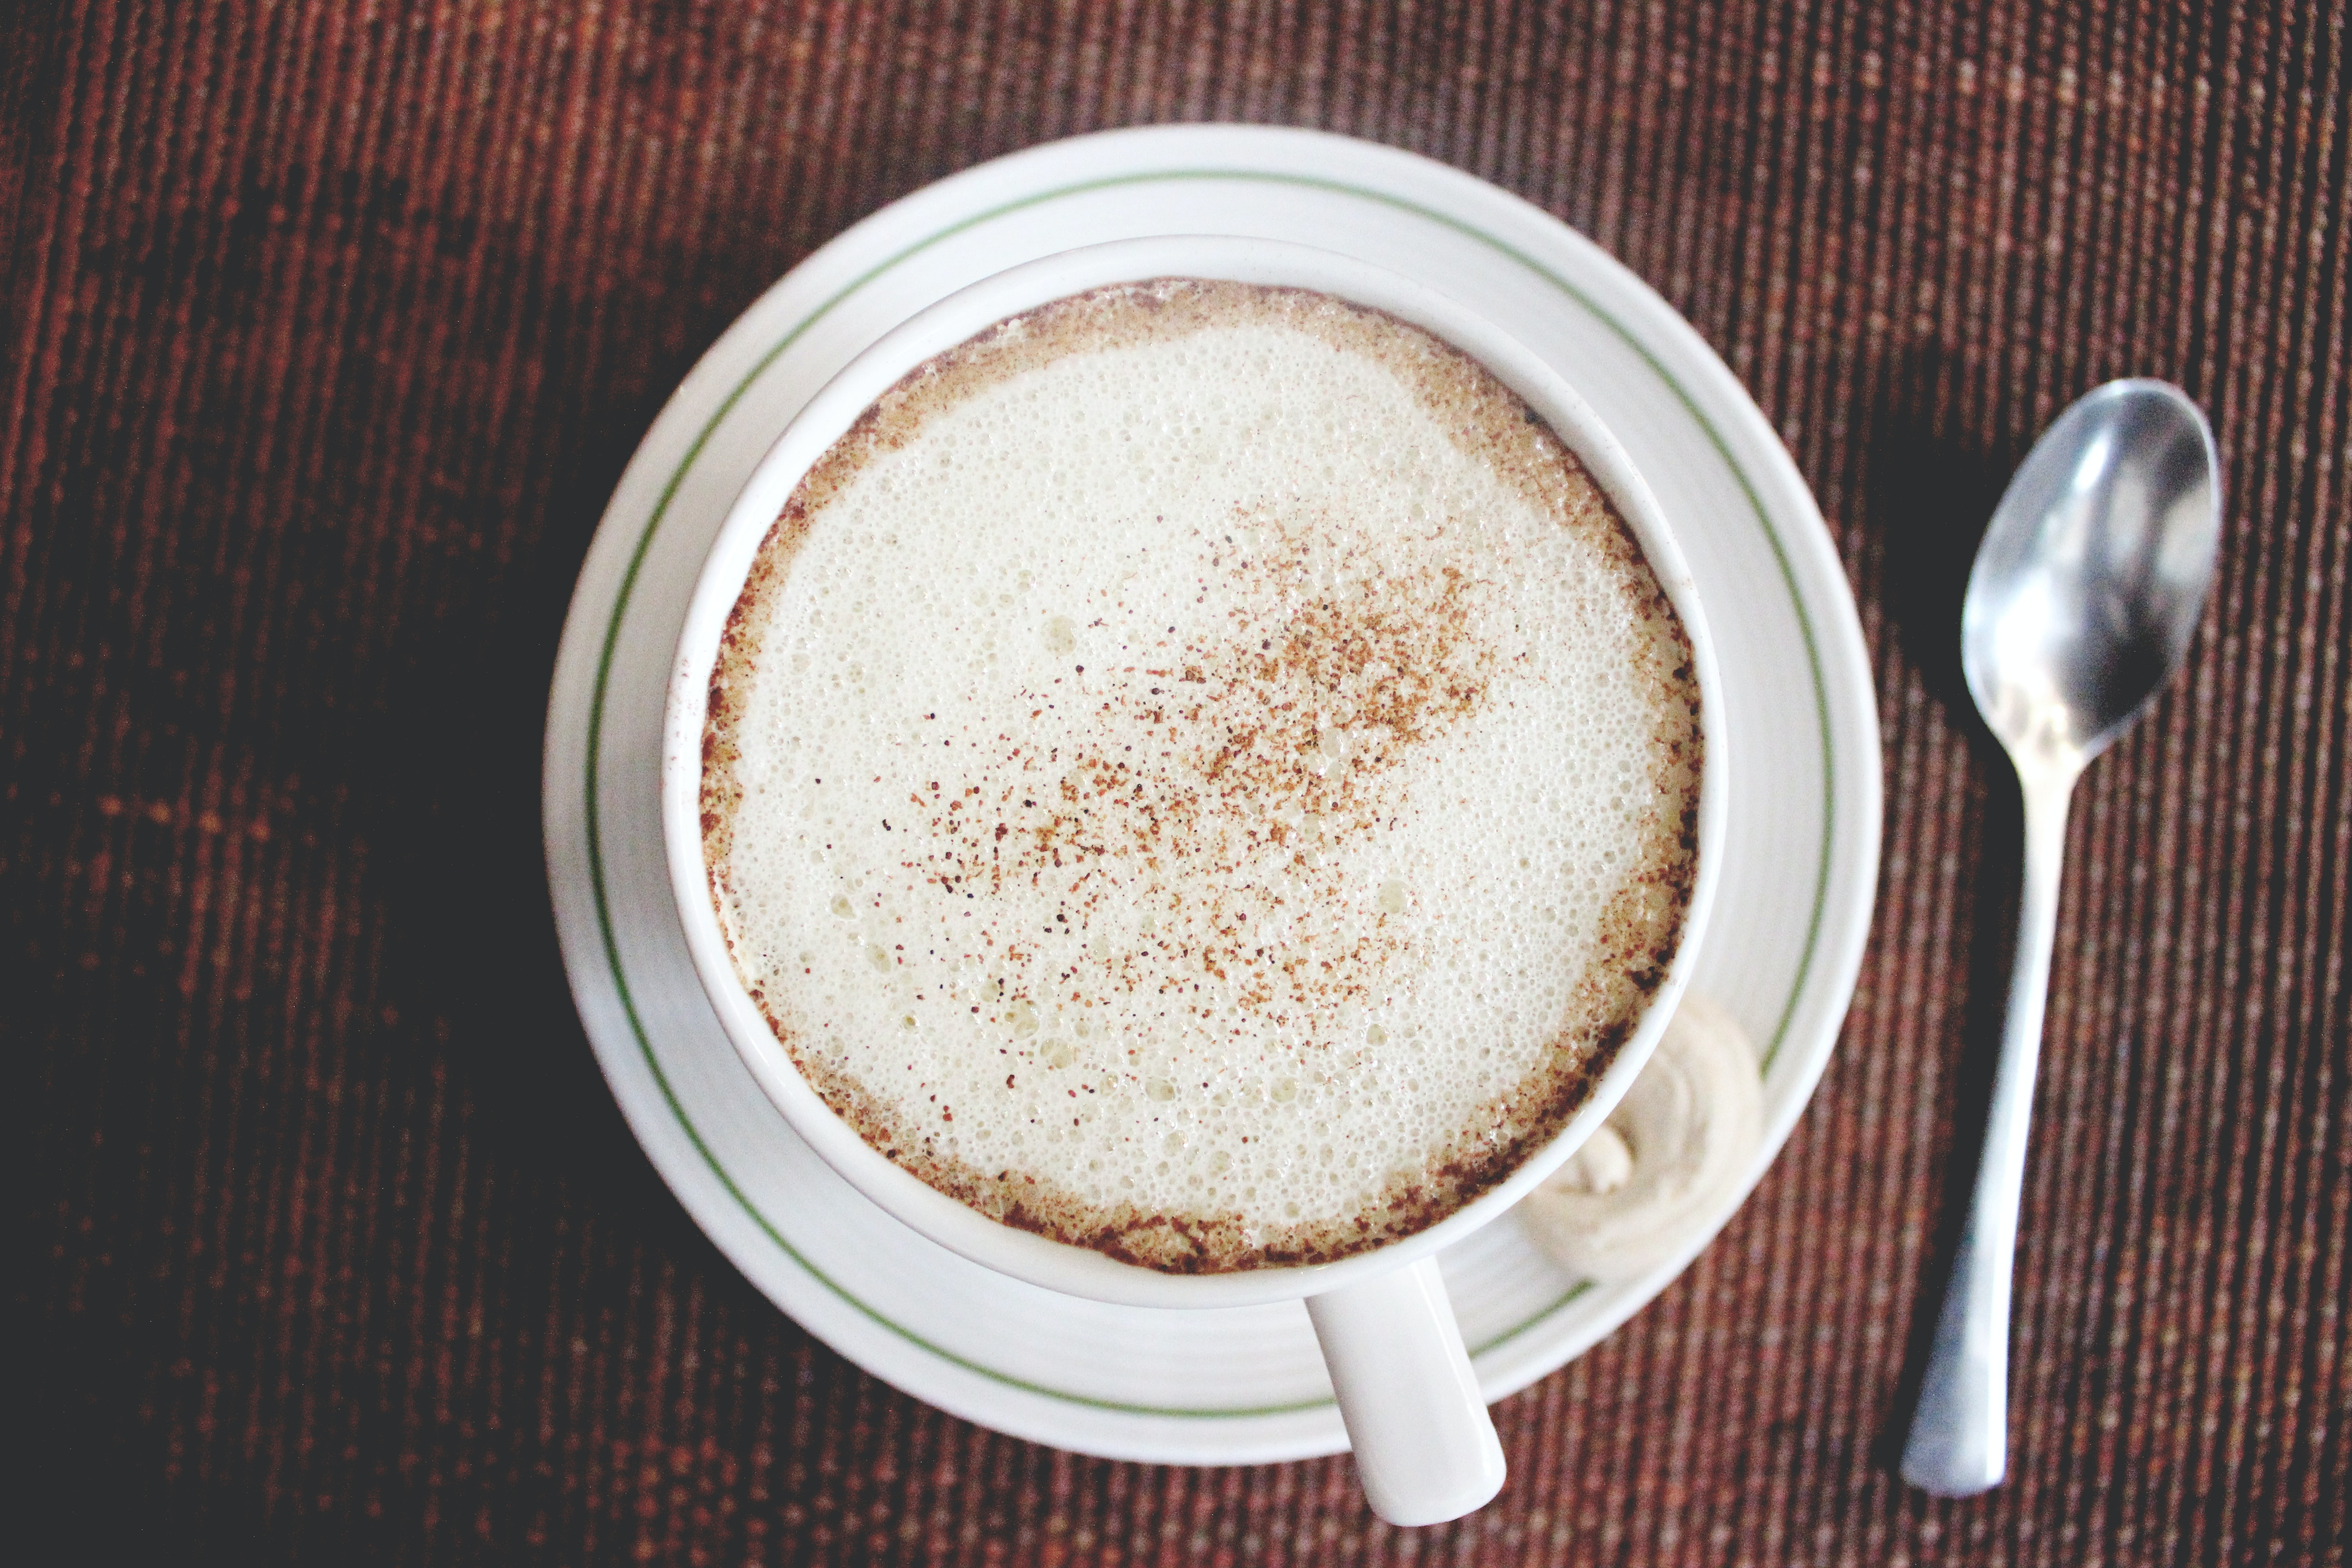 A frothy cup of coffee with cinnamon sprinkled on top of it in a white mug